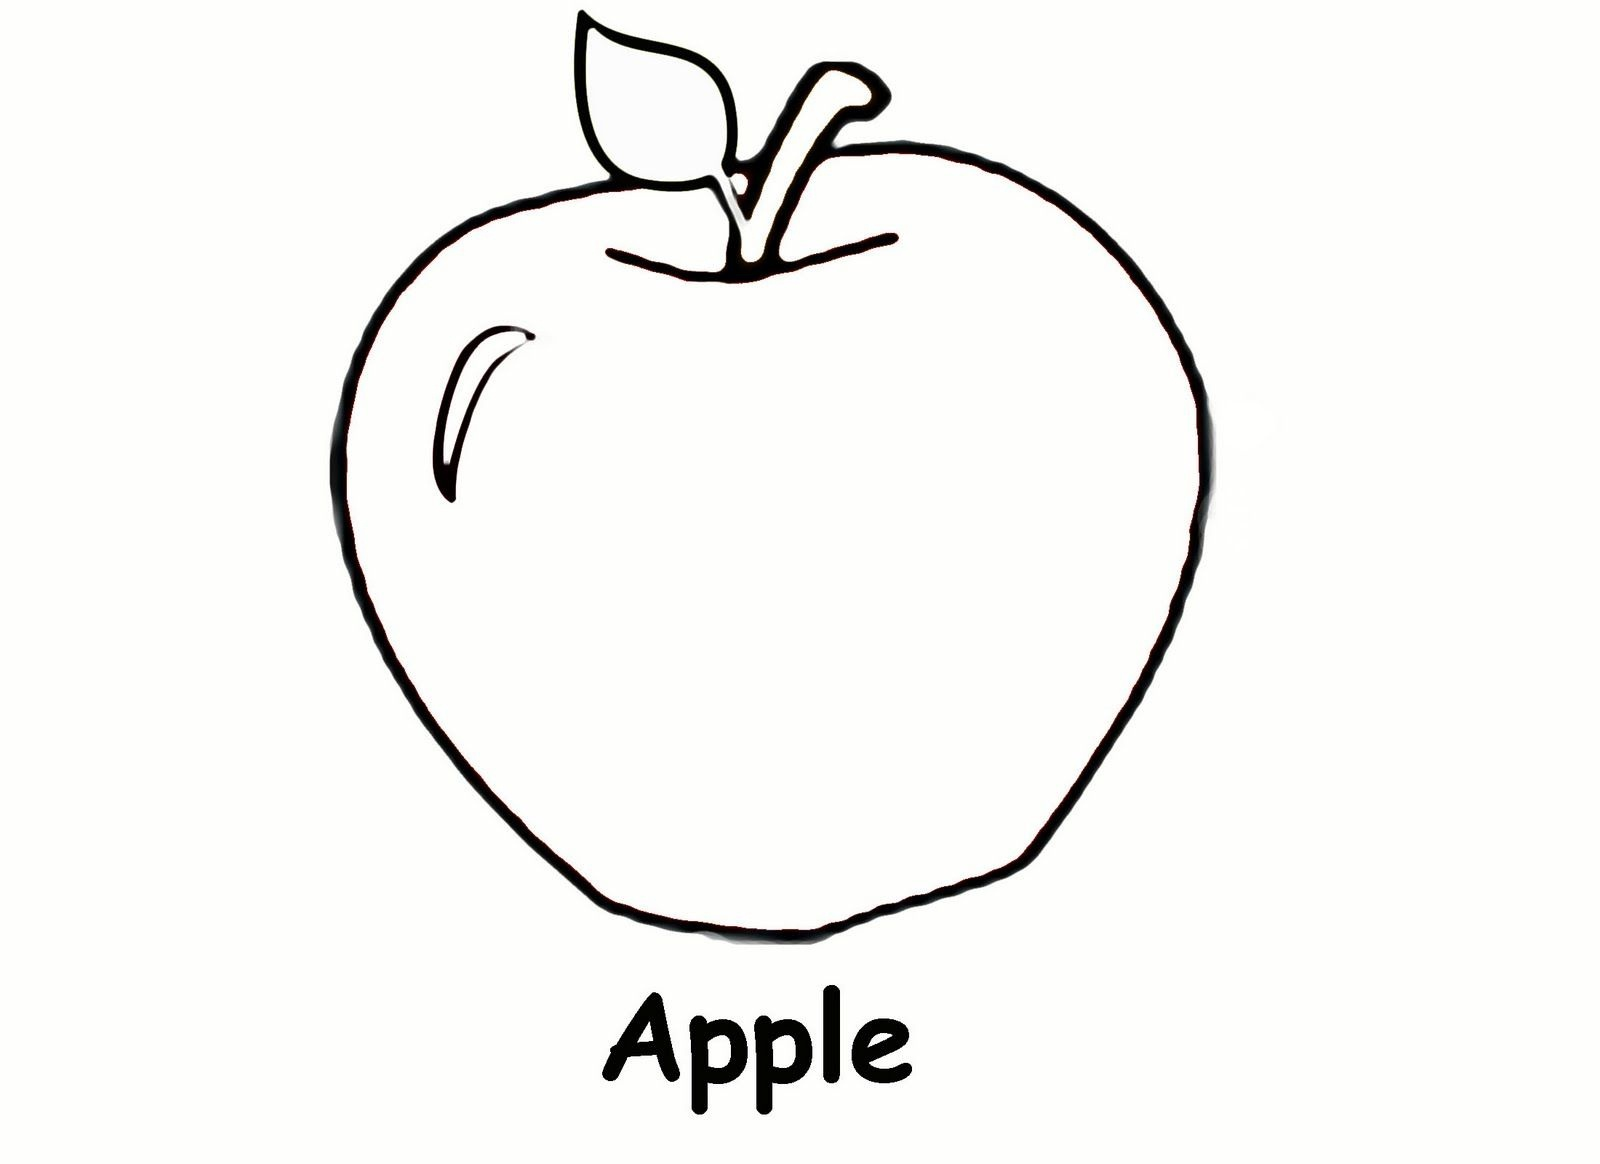 Free Printable Apple Coloring Pages For Kids | Coloring Book Pages - Free Printable Pages For Preschoolers